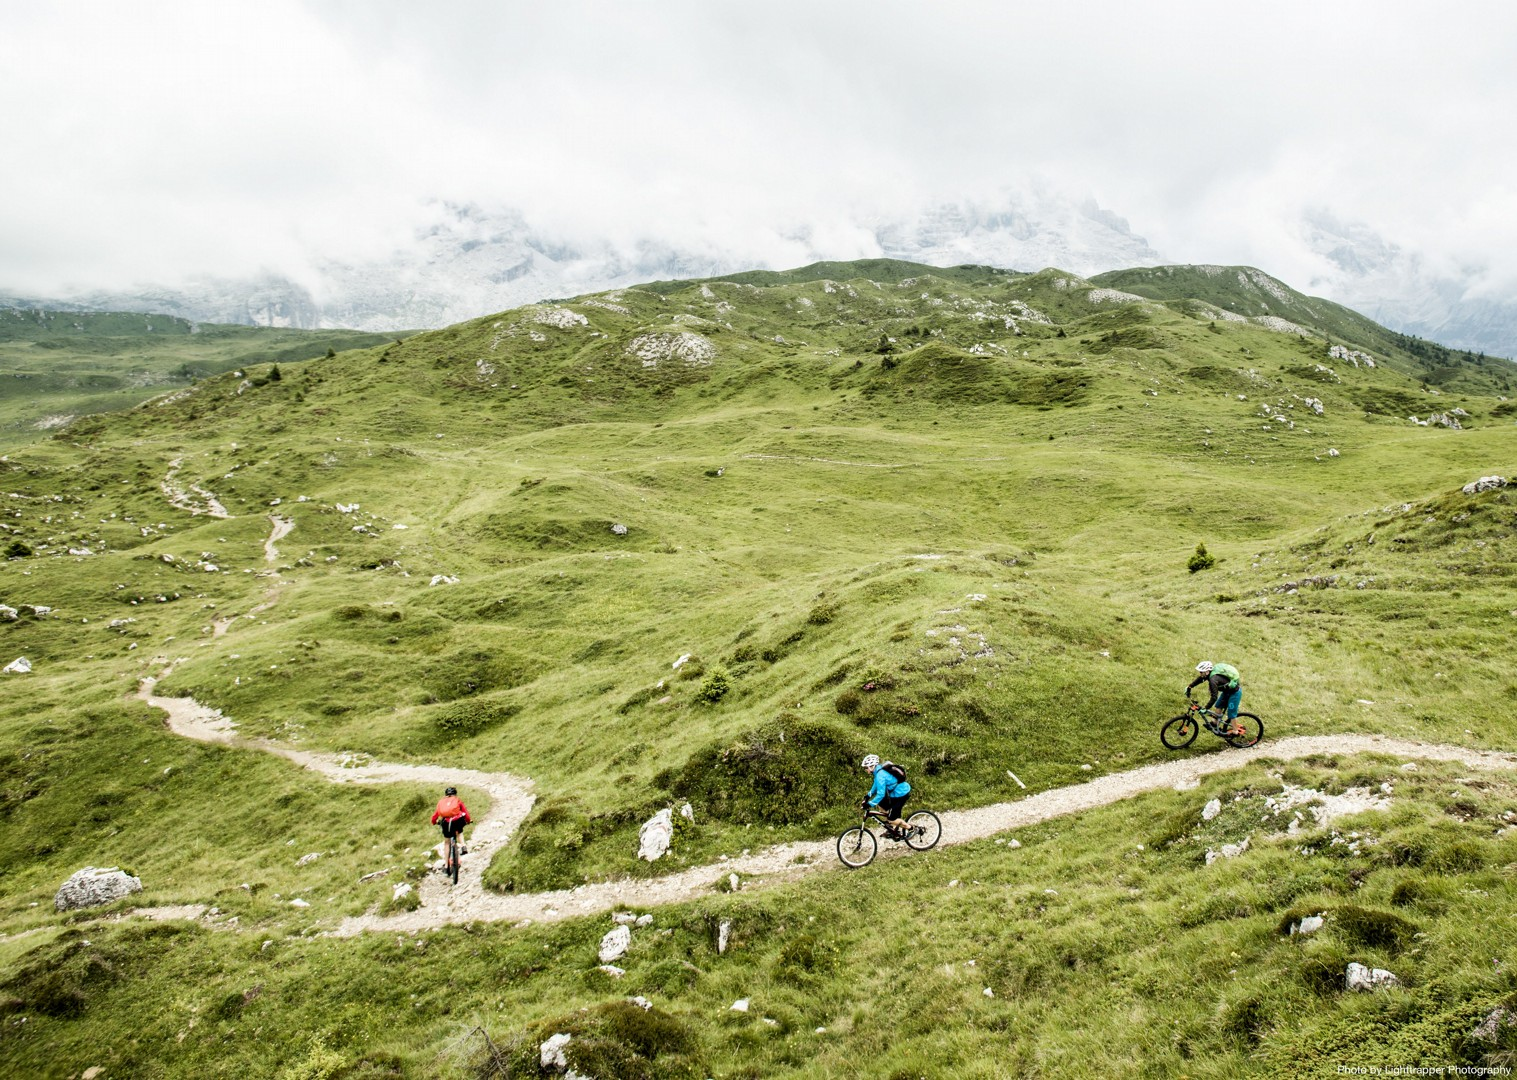 alpine-mountain-biking-mountain-bike-holiday-in-the-alps-alpine-adventure.jpg - Italy and France - Alpine Adventure - Mountain Biking